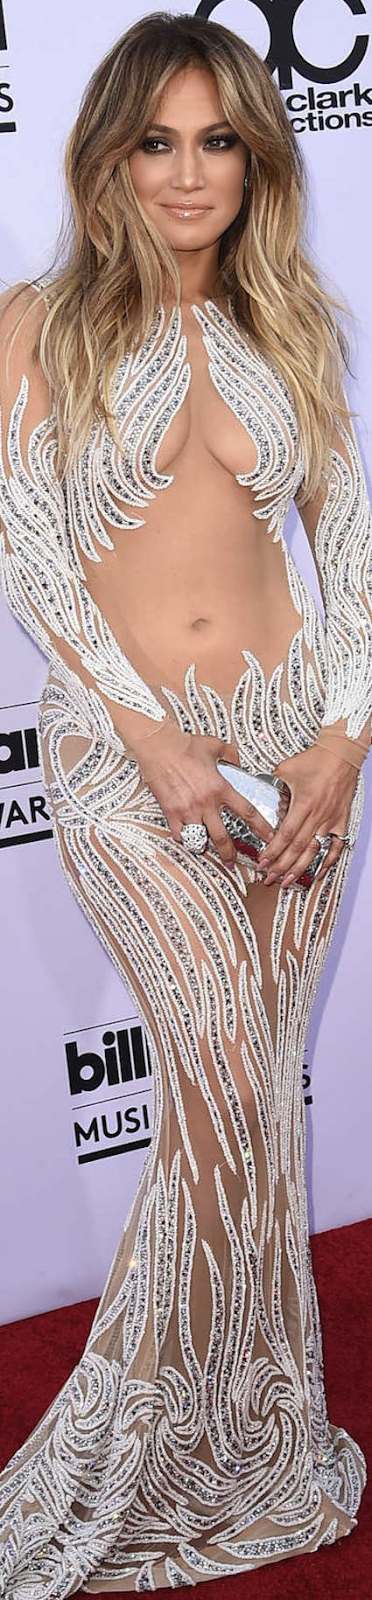 2015 Billboard Awards Jennifer Lopez